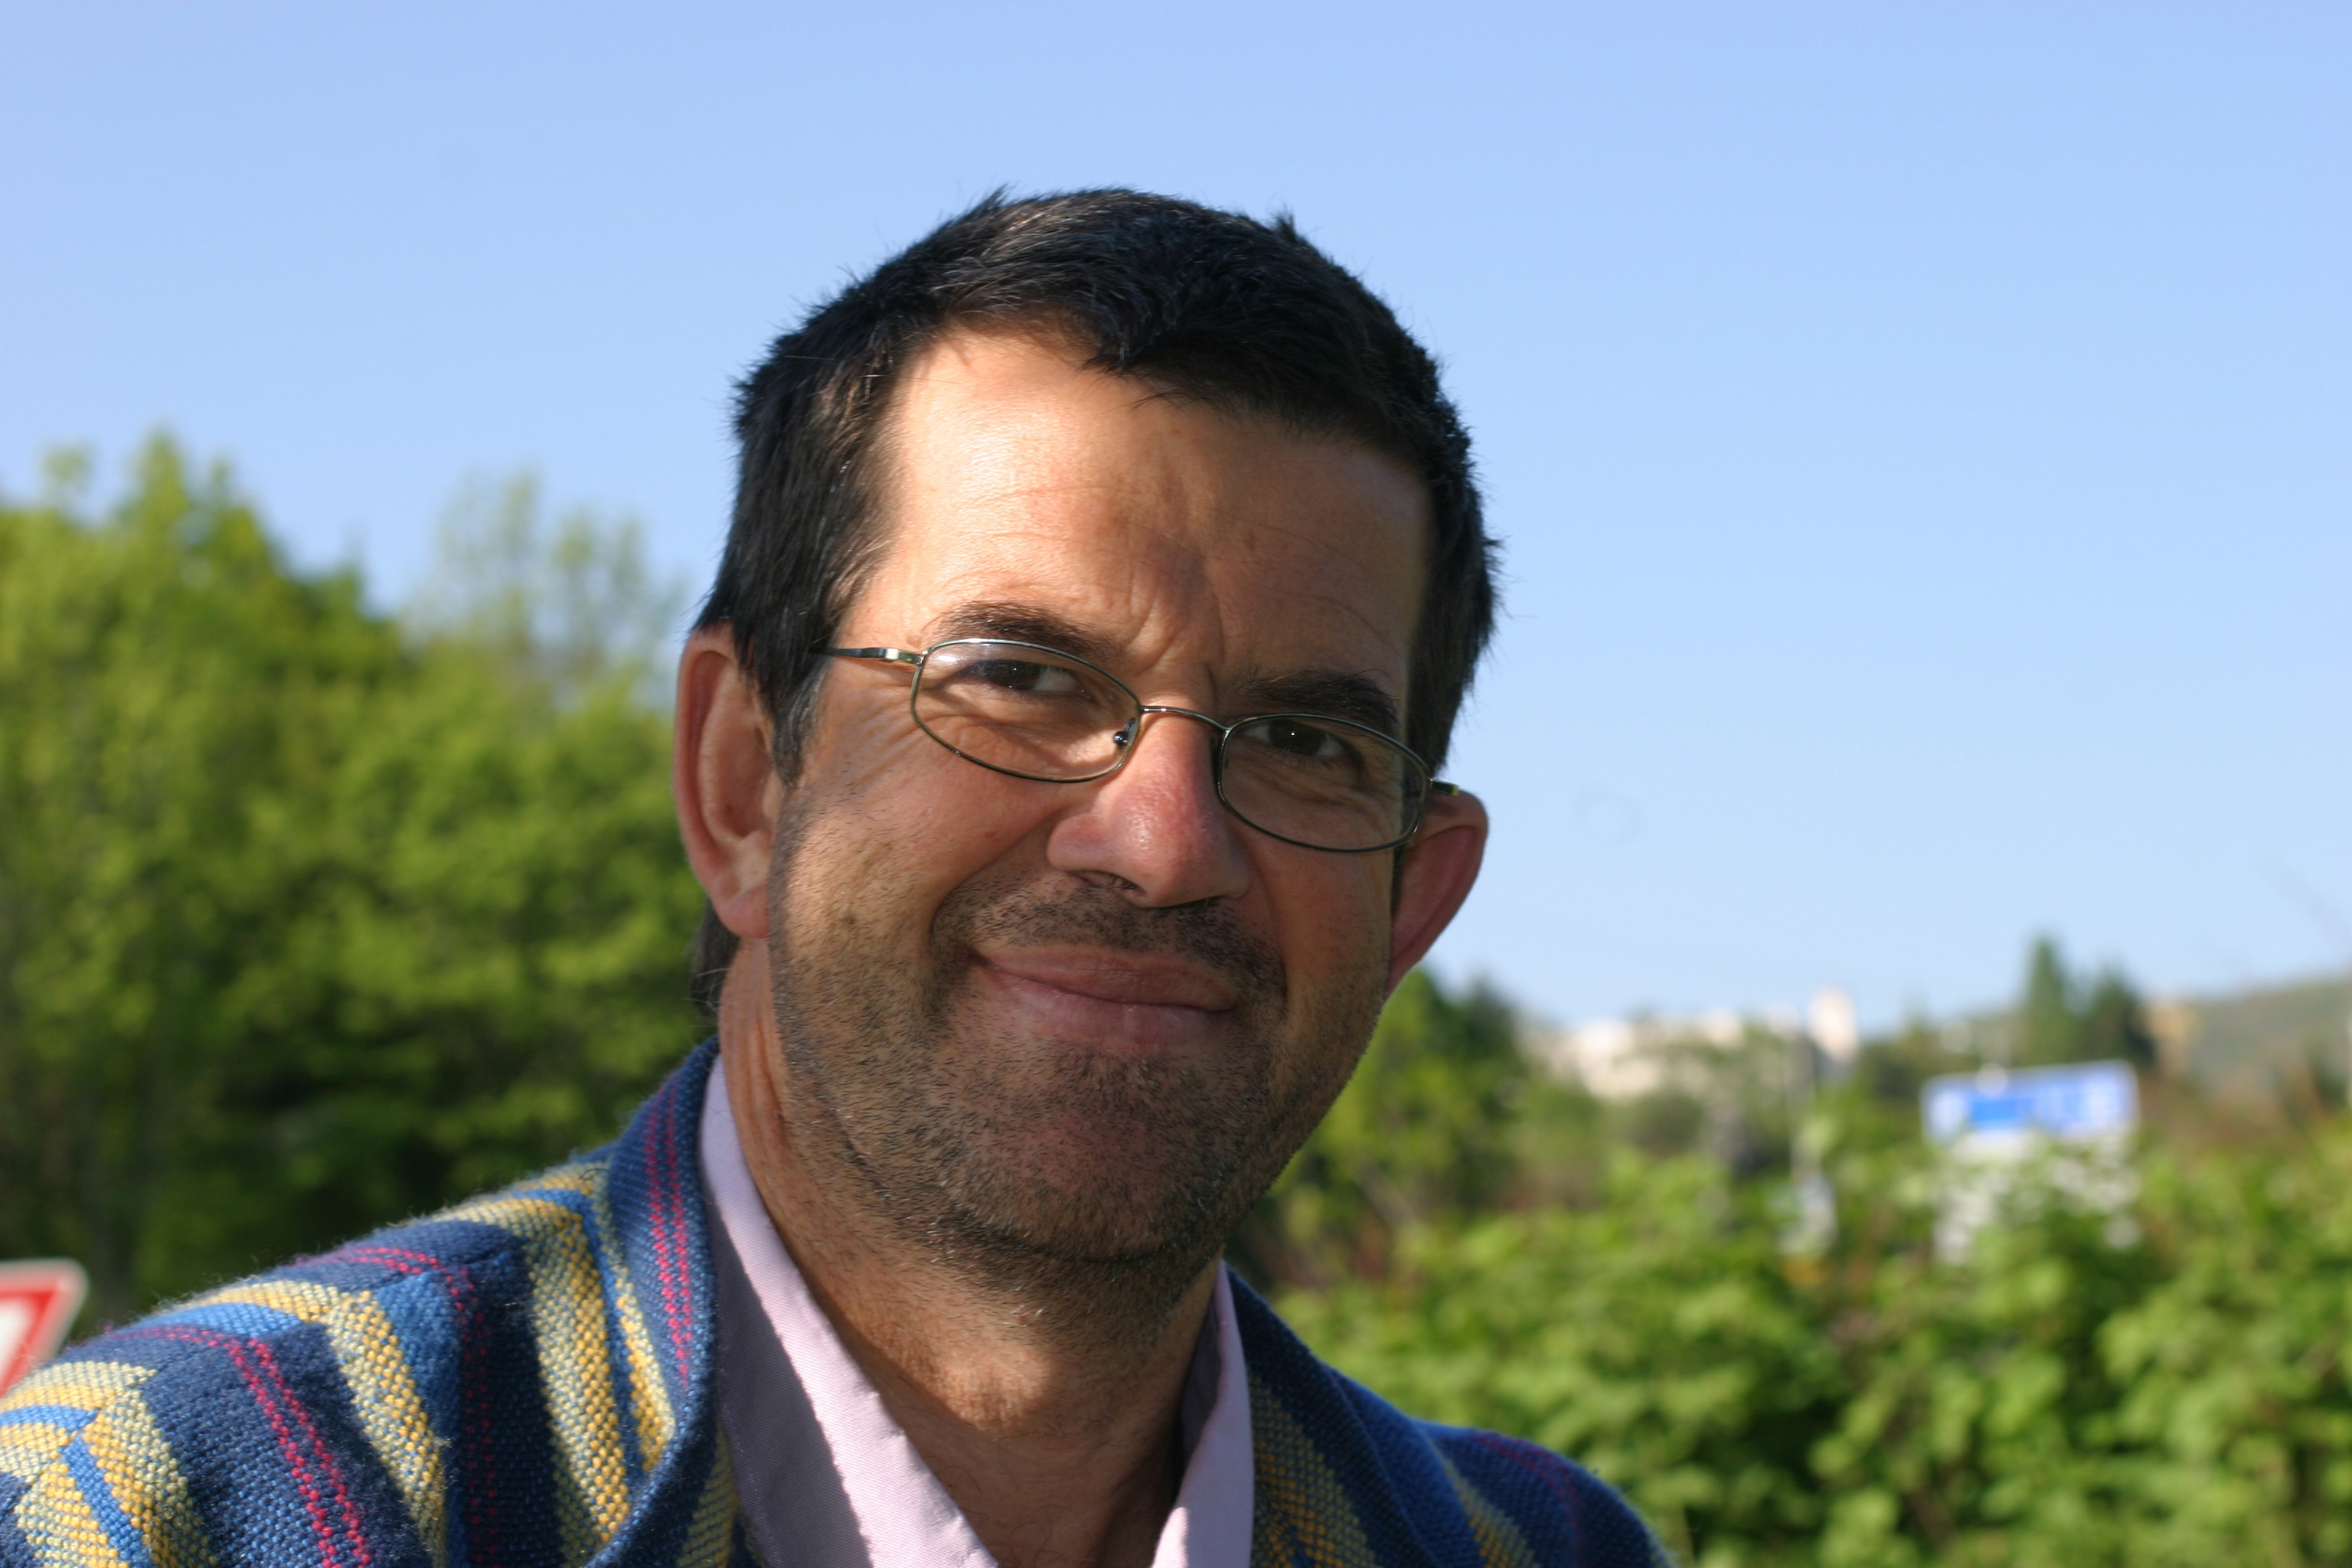 André Tallone